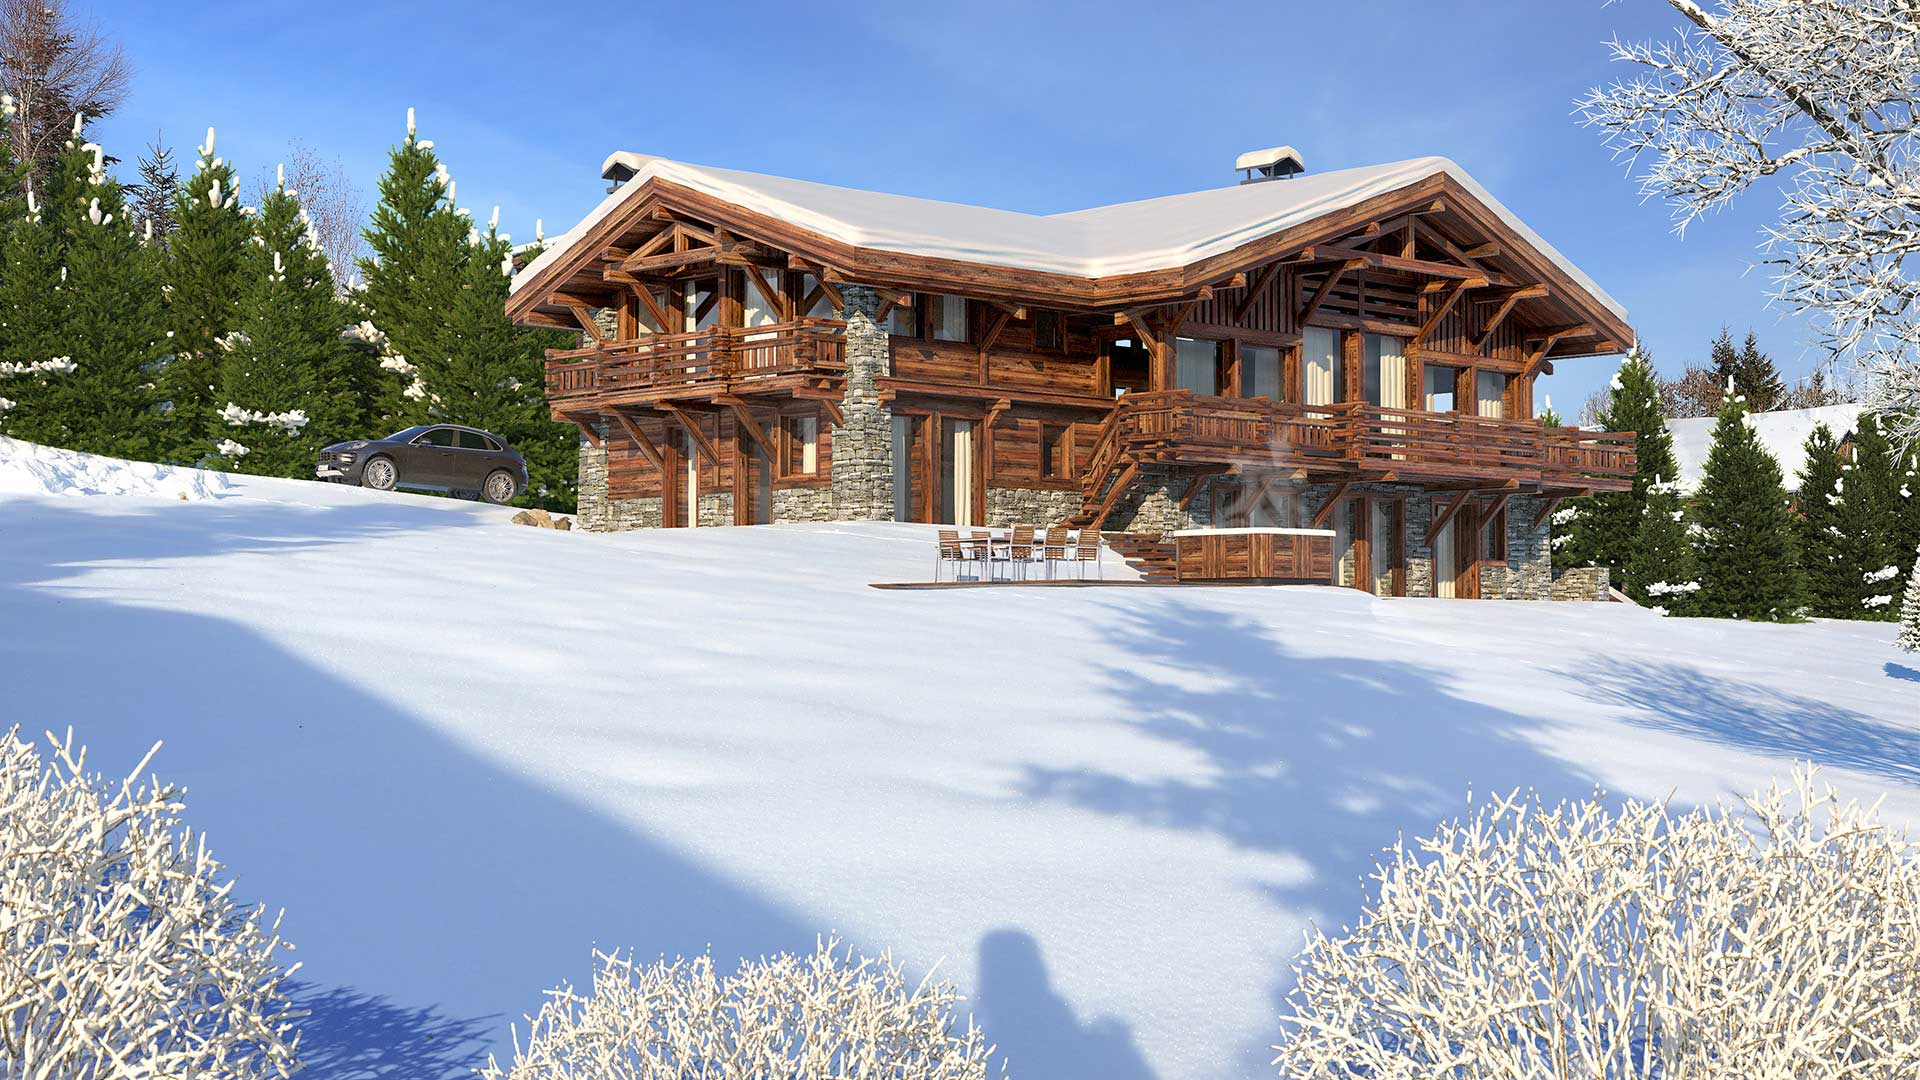 3D Design of a real estate property : Creation of a luxurious chalet made from computer generated images.